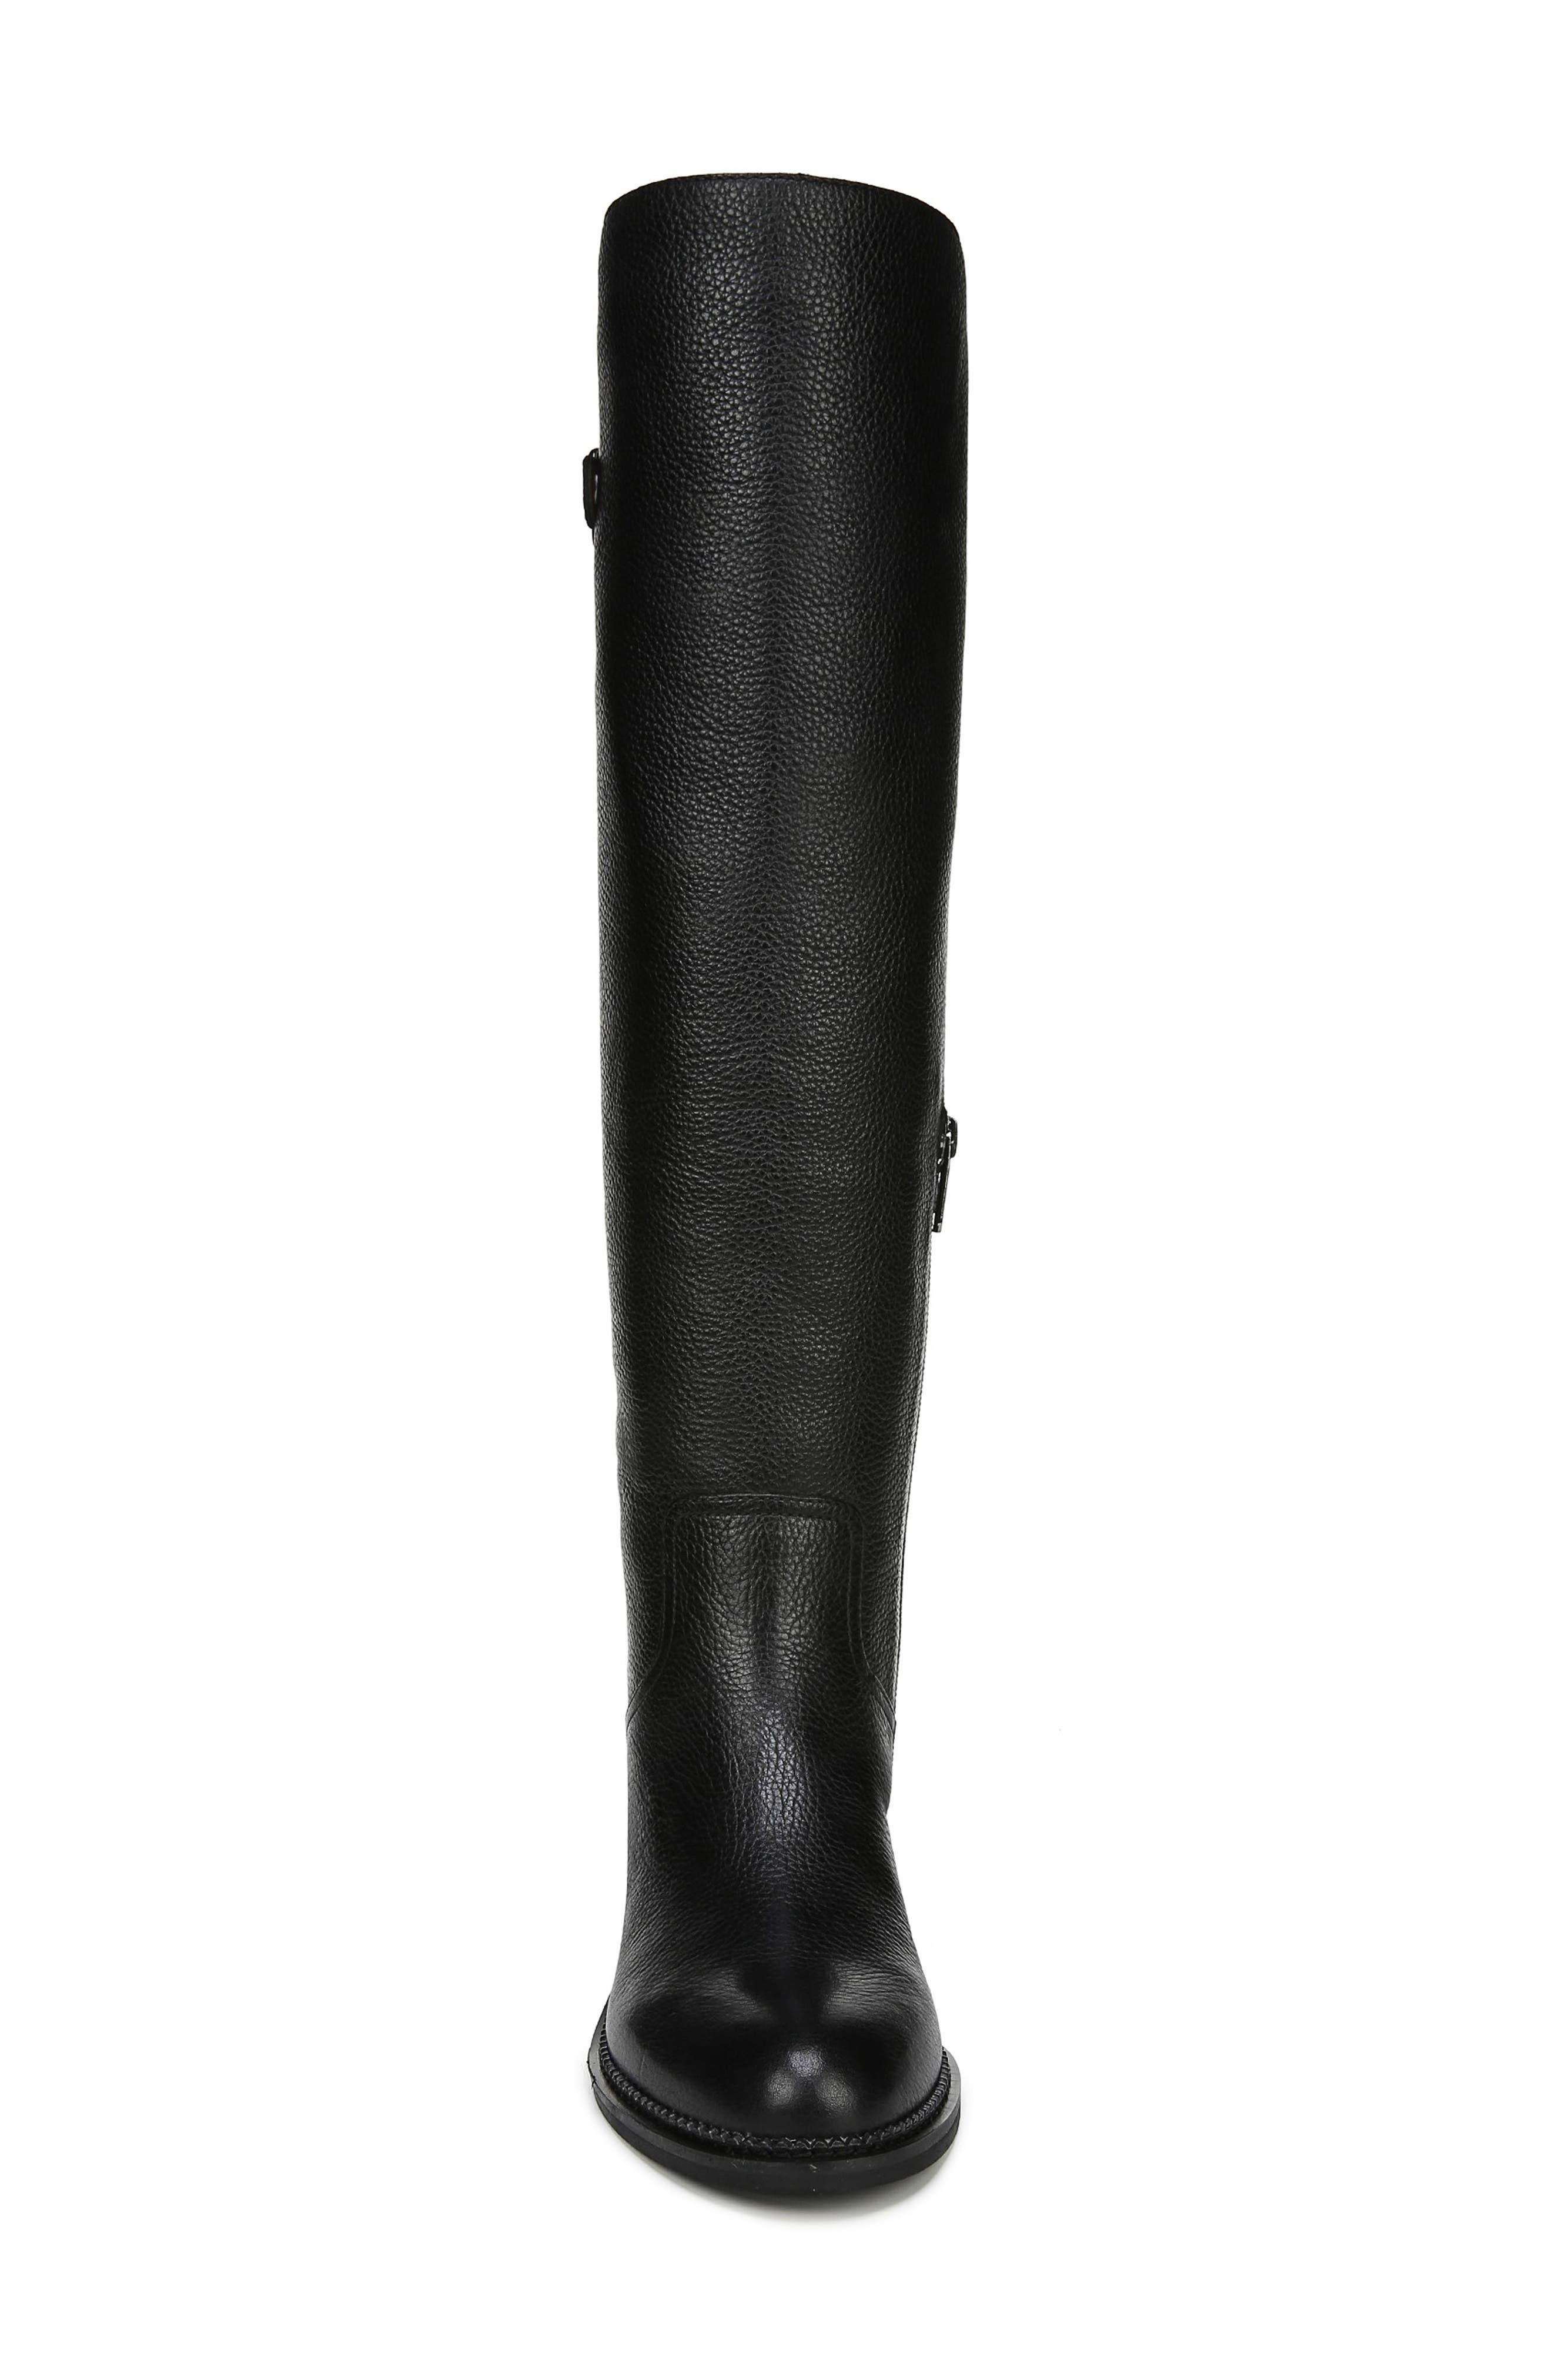 Halloway Knee High Boot,                             Alternate thumbnail 4, color,                             BLACK LEATHER